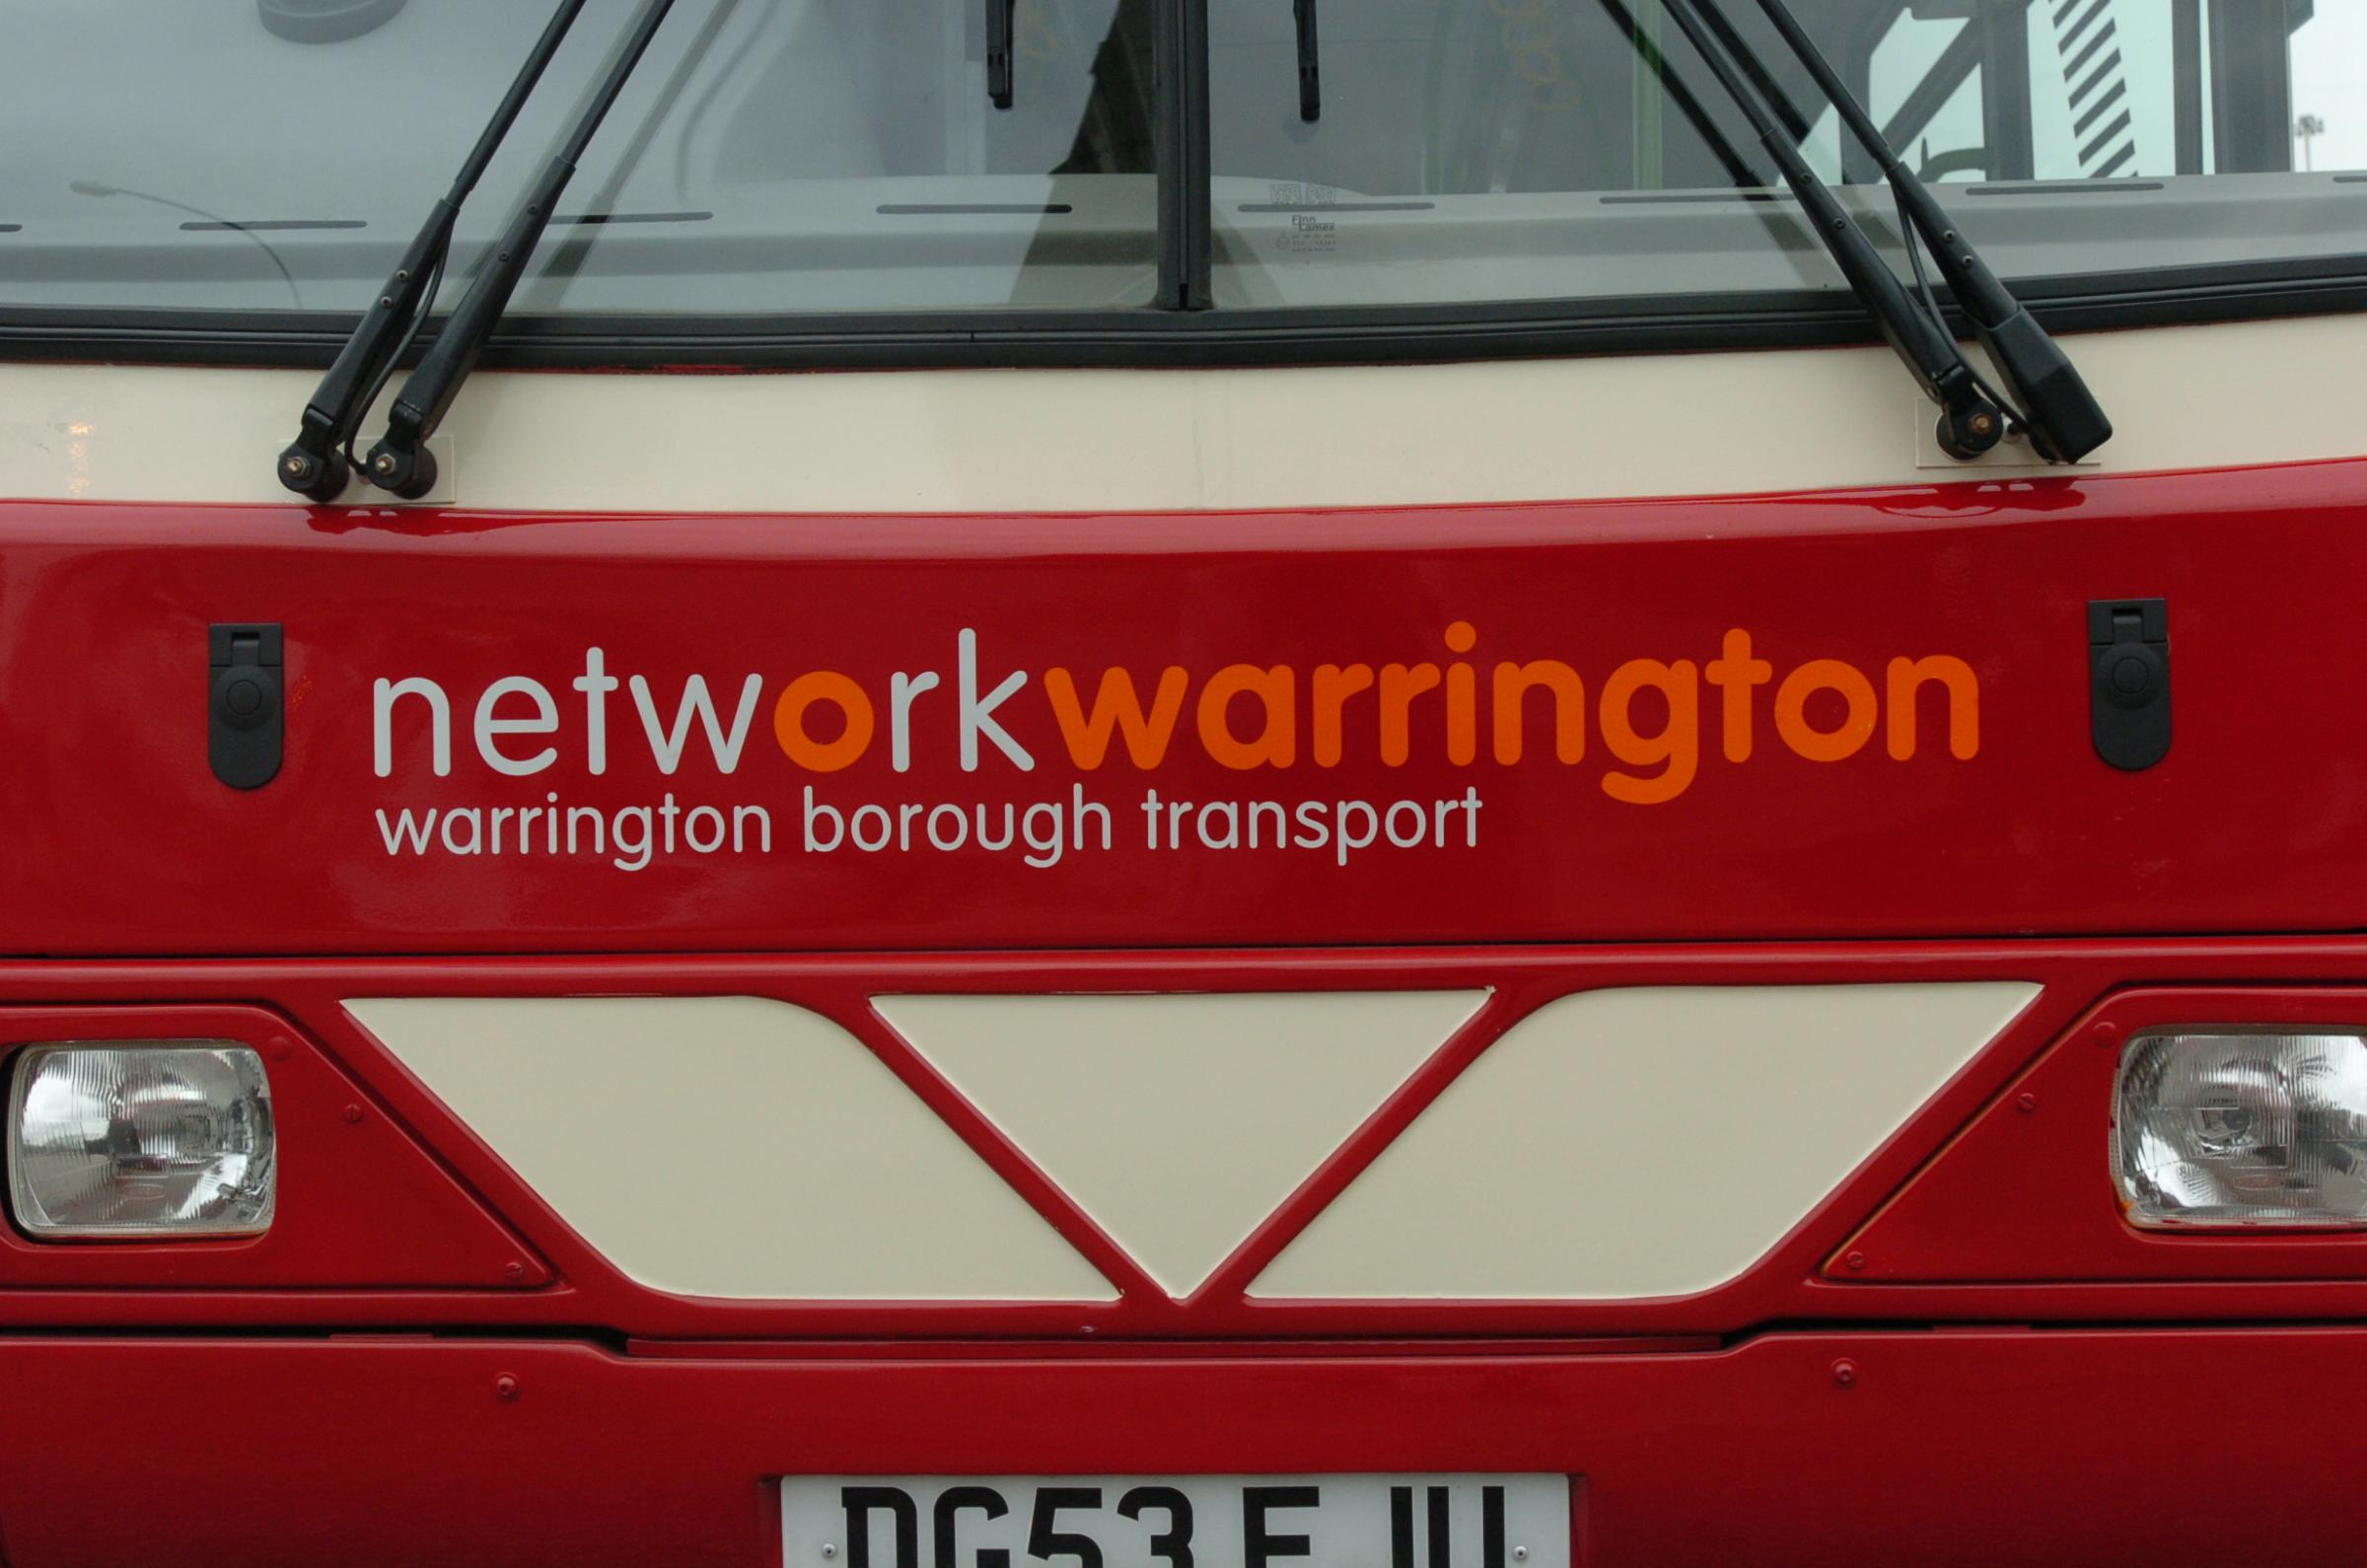 Warrington's Own Buses, formerly known as Network Warrington, has axed its 'vital' 23 and 23a bus services.